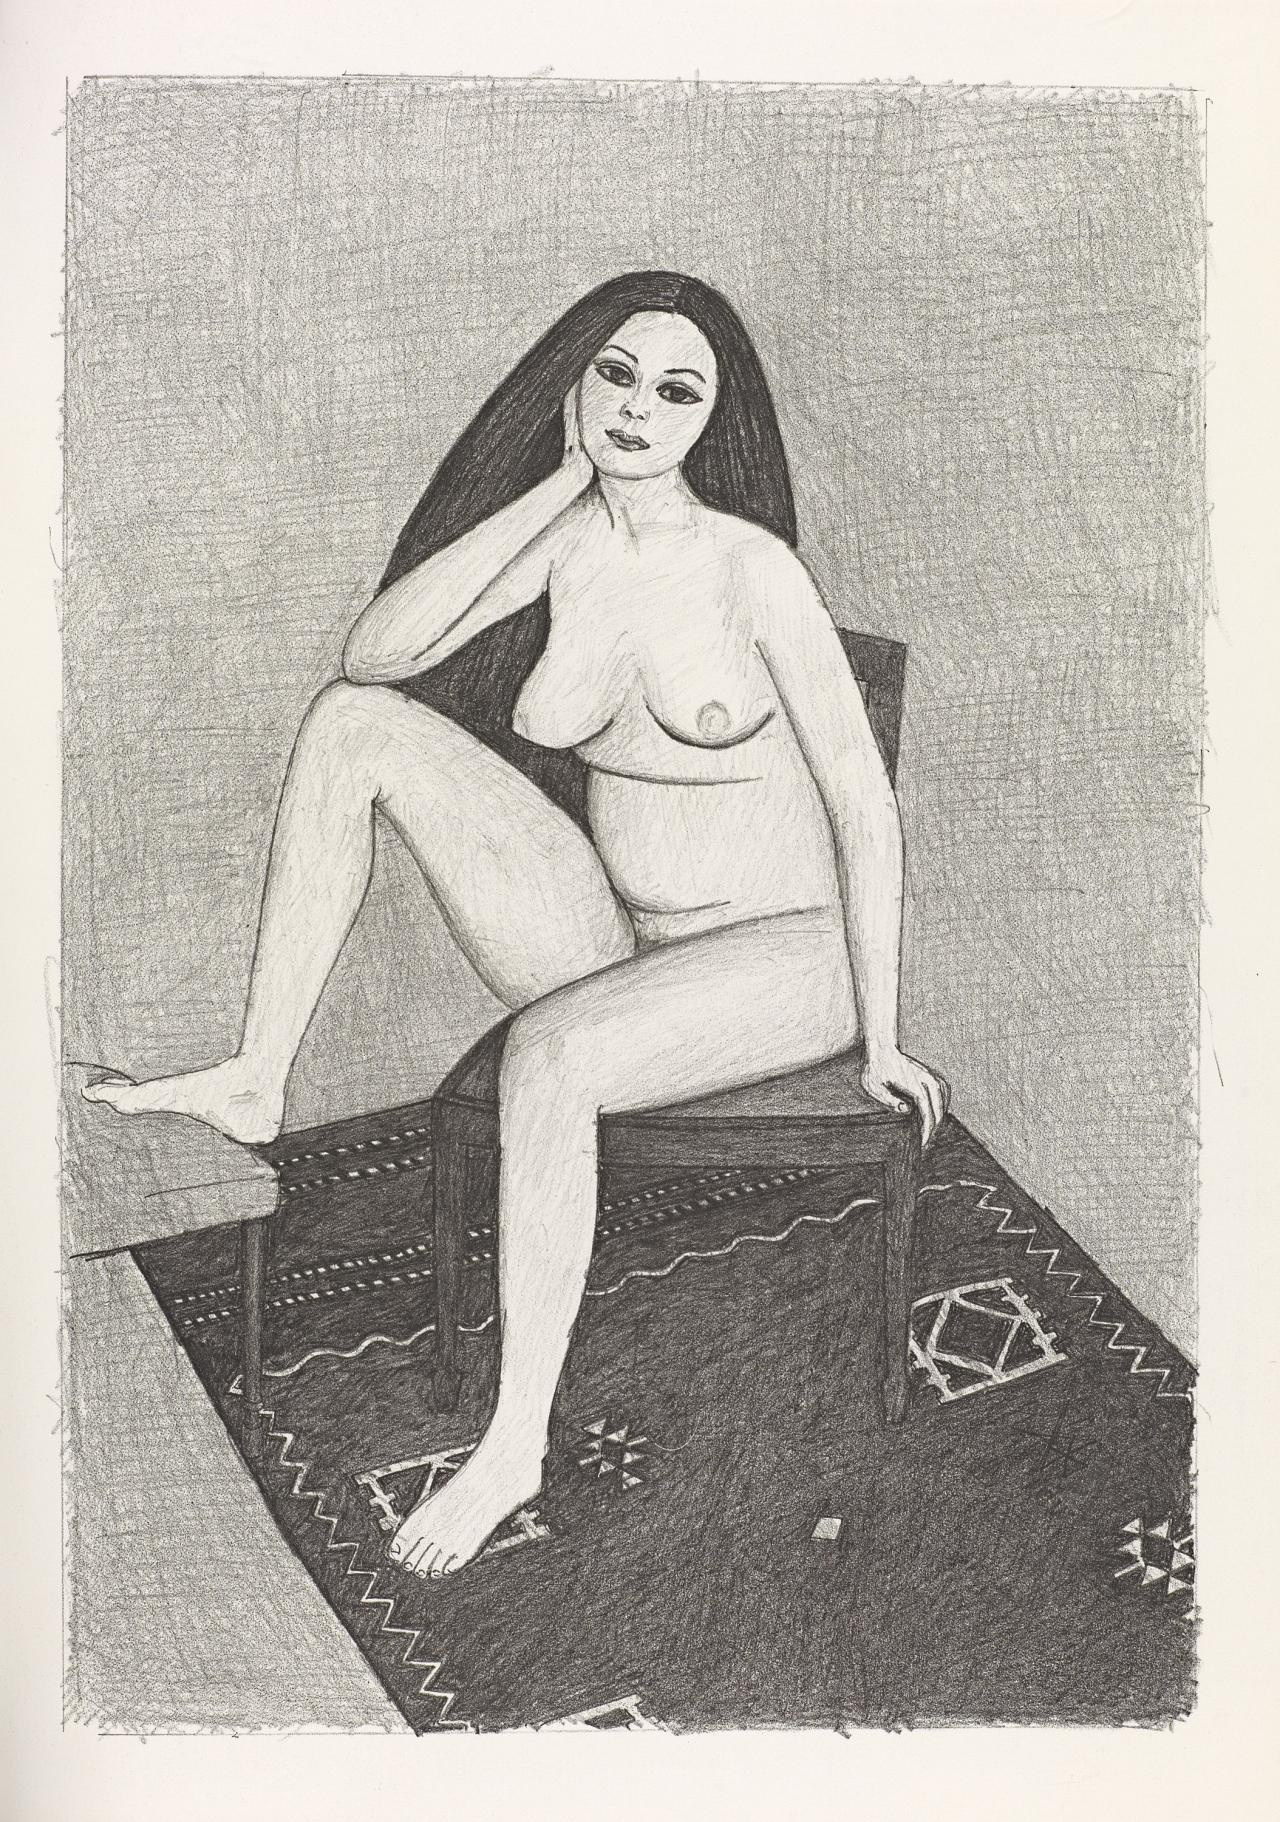 (Nude seated on chair, resting elbow on raised knee, on patterned rug)